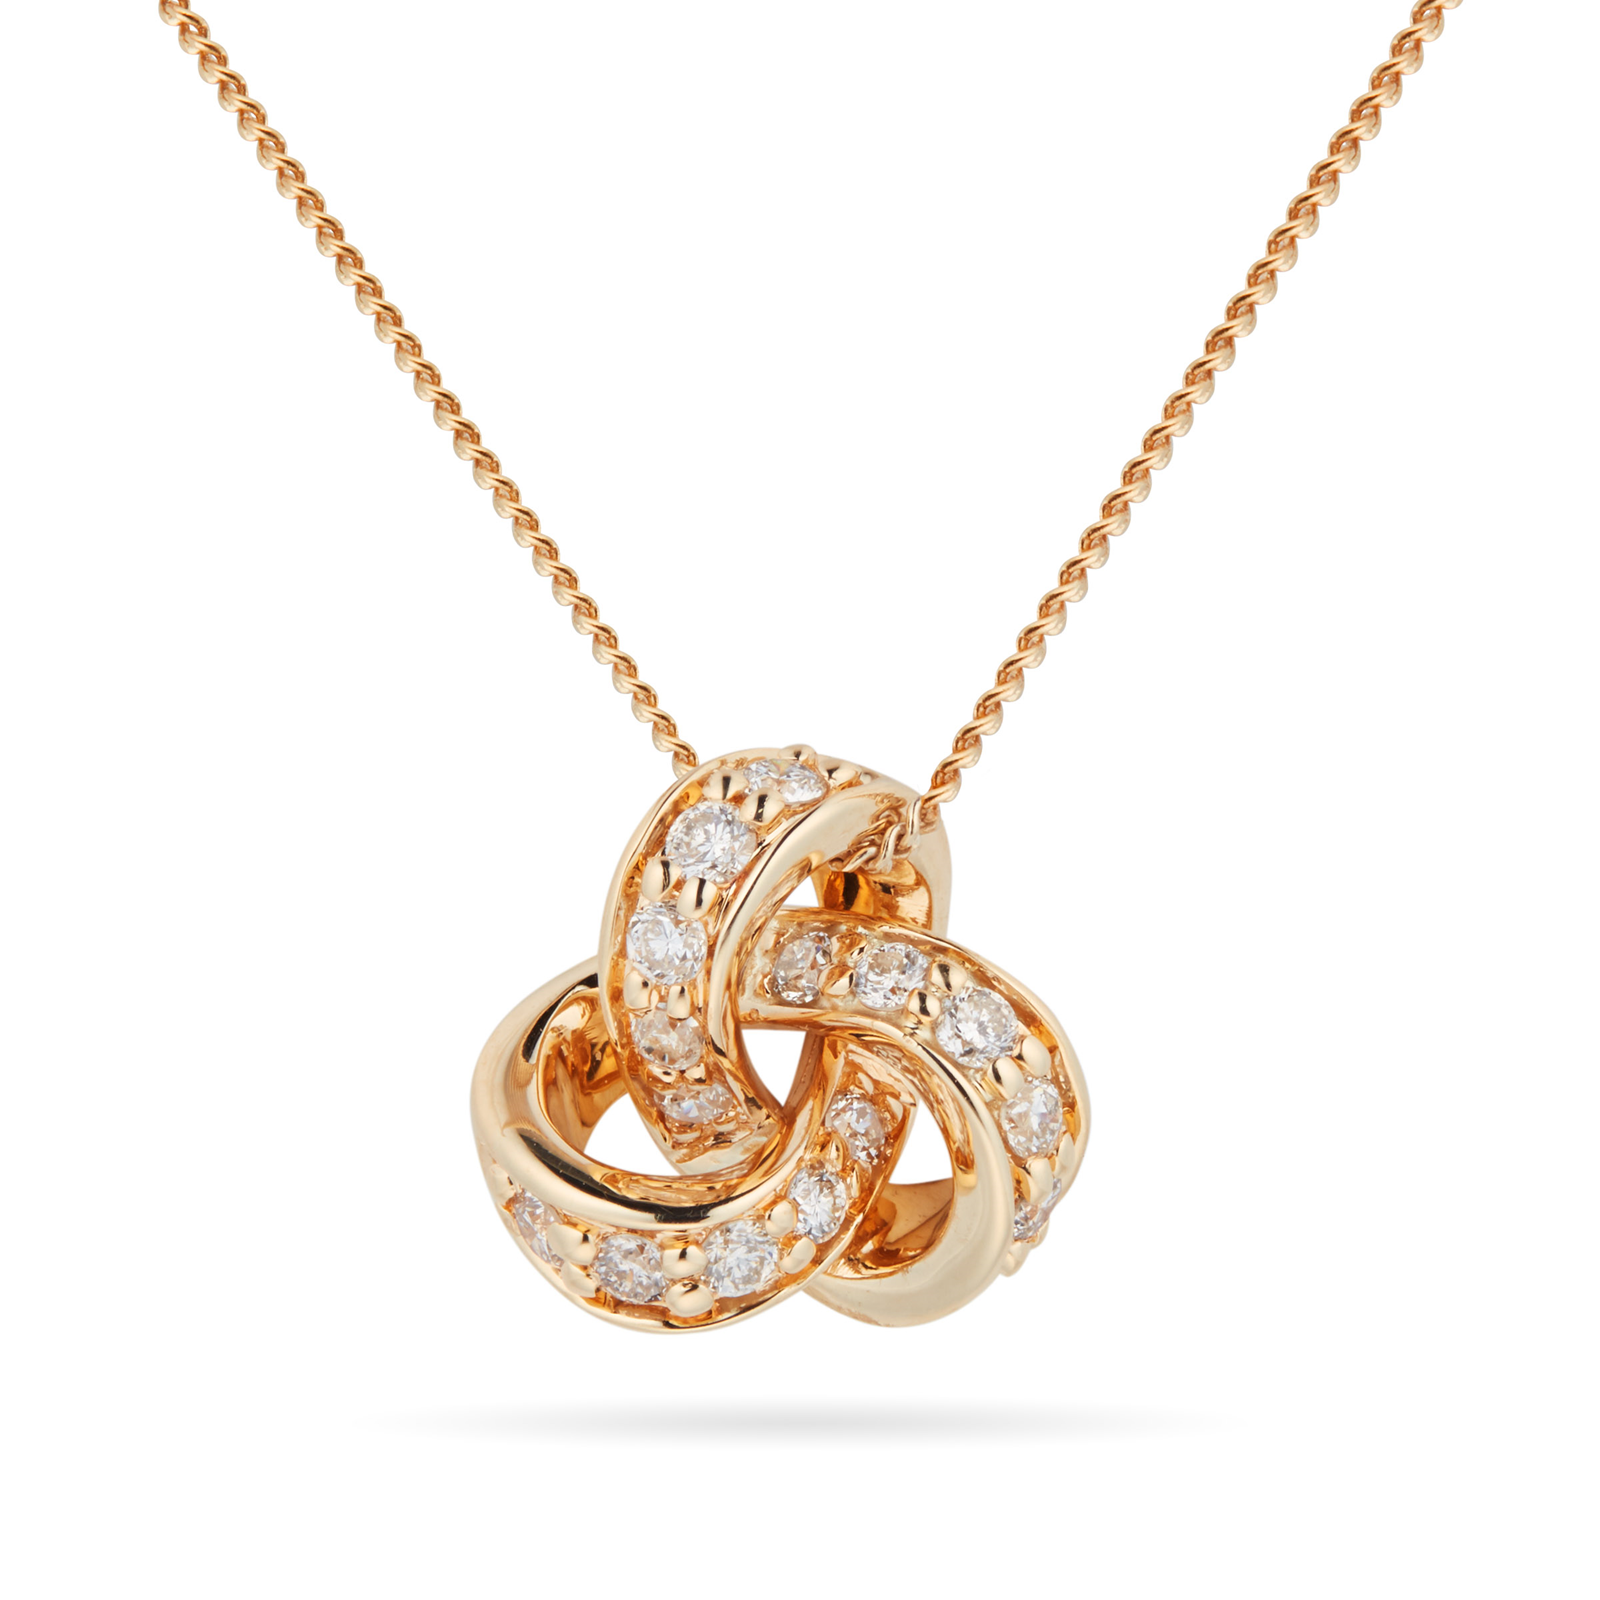 9ct Yellow Gold 0.15cttw Diamond Knot Pendant